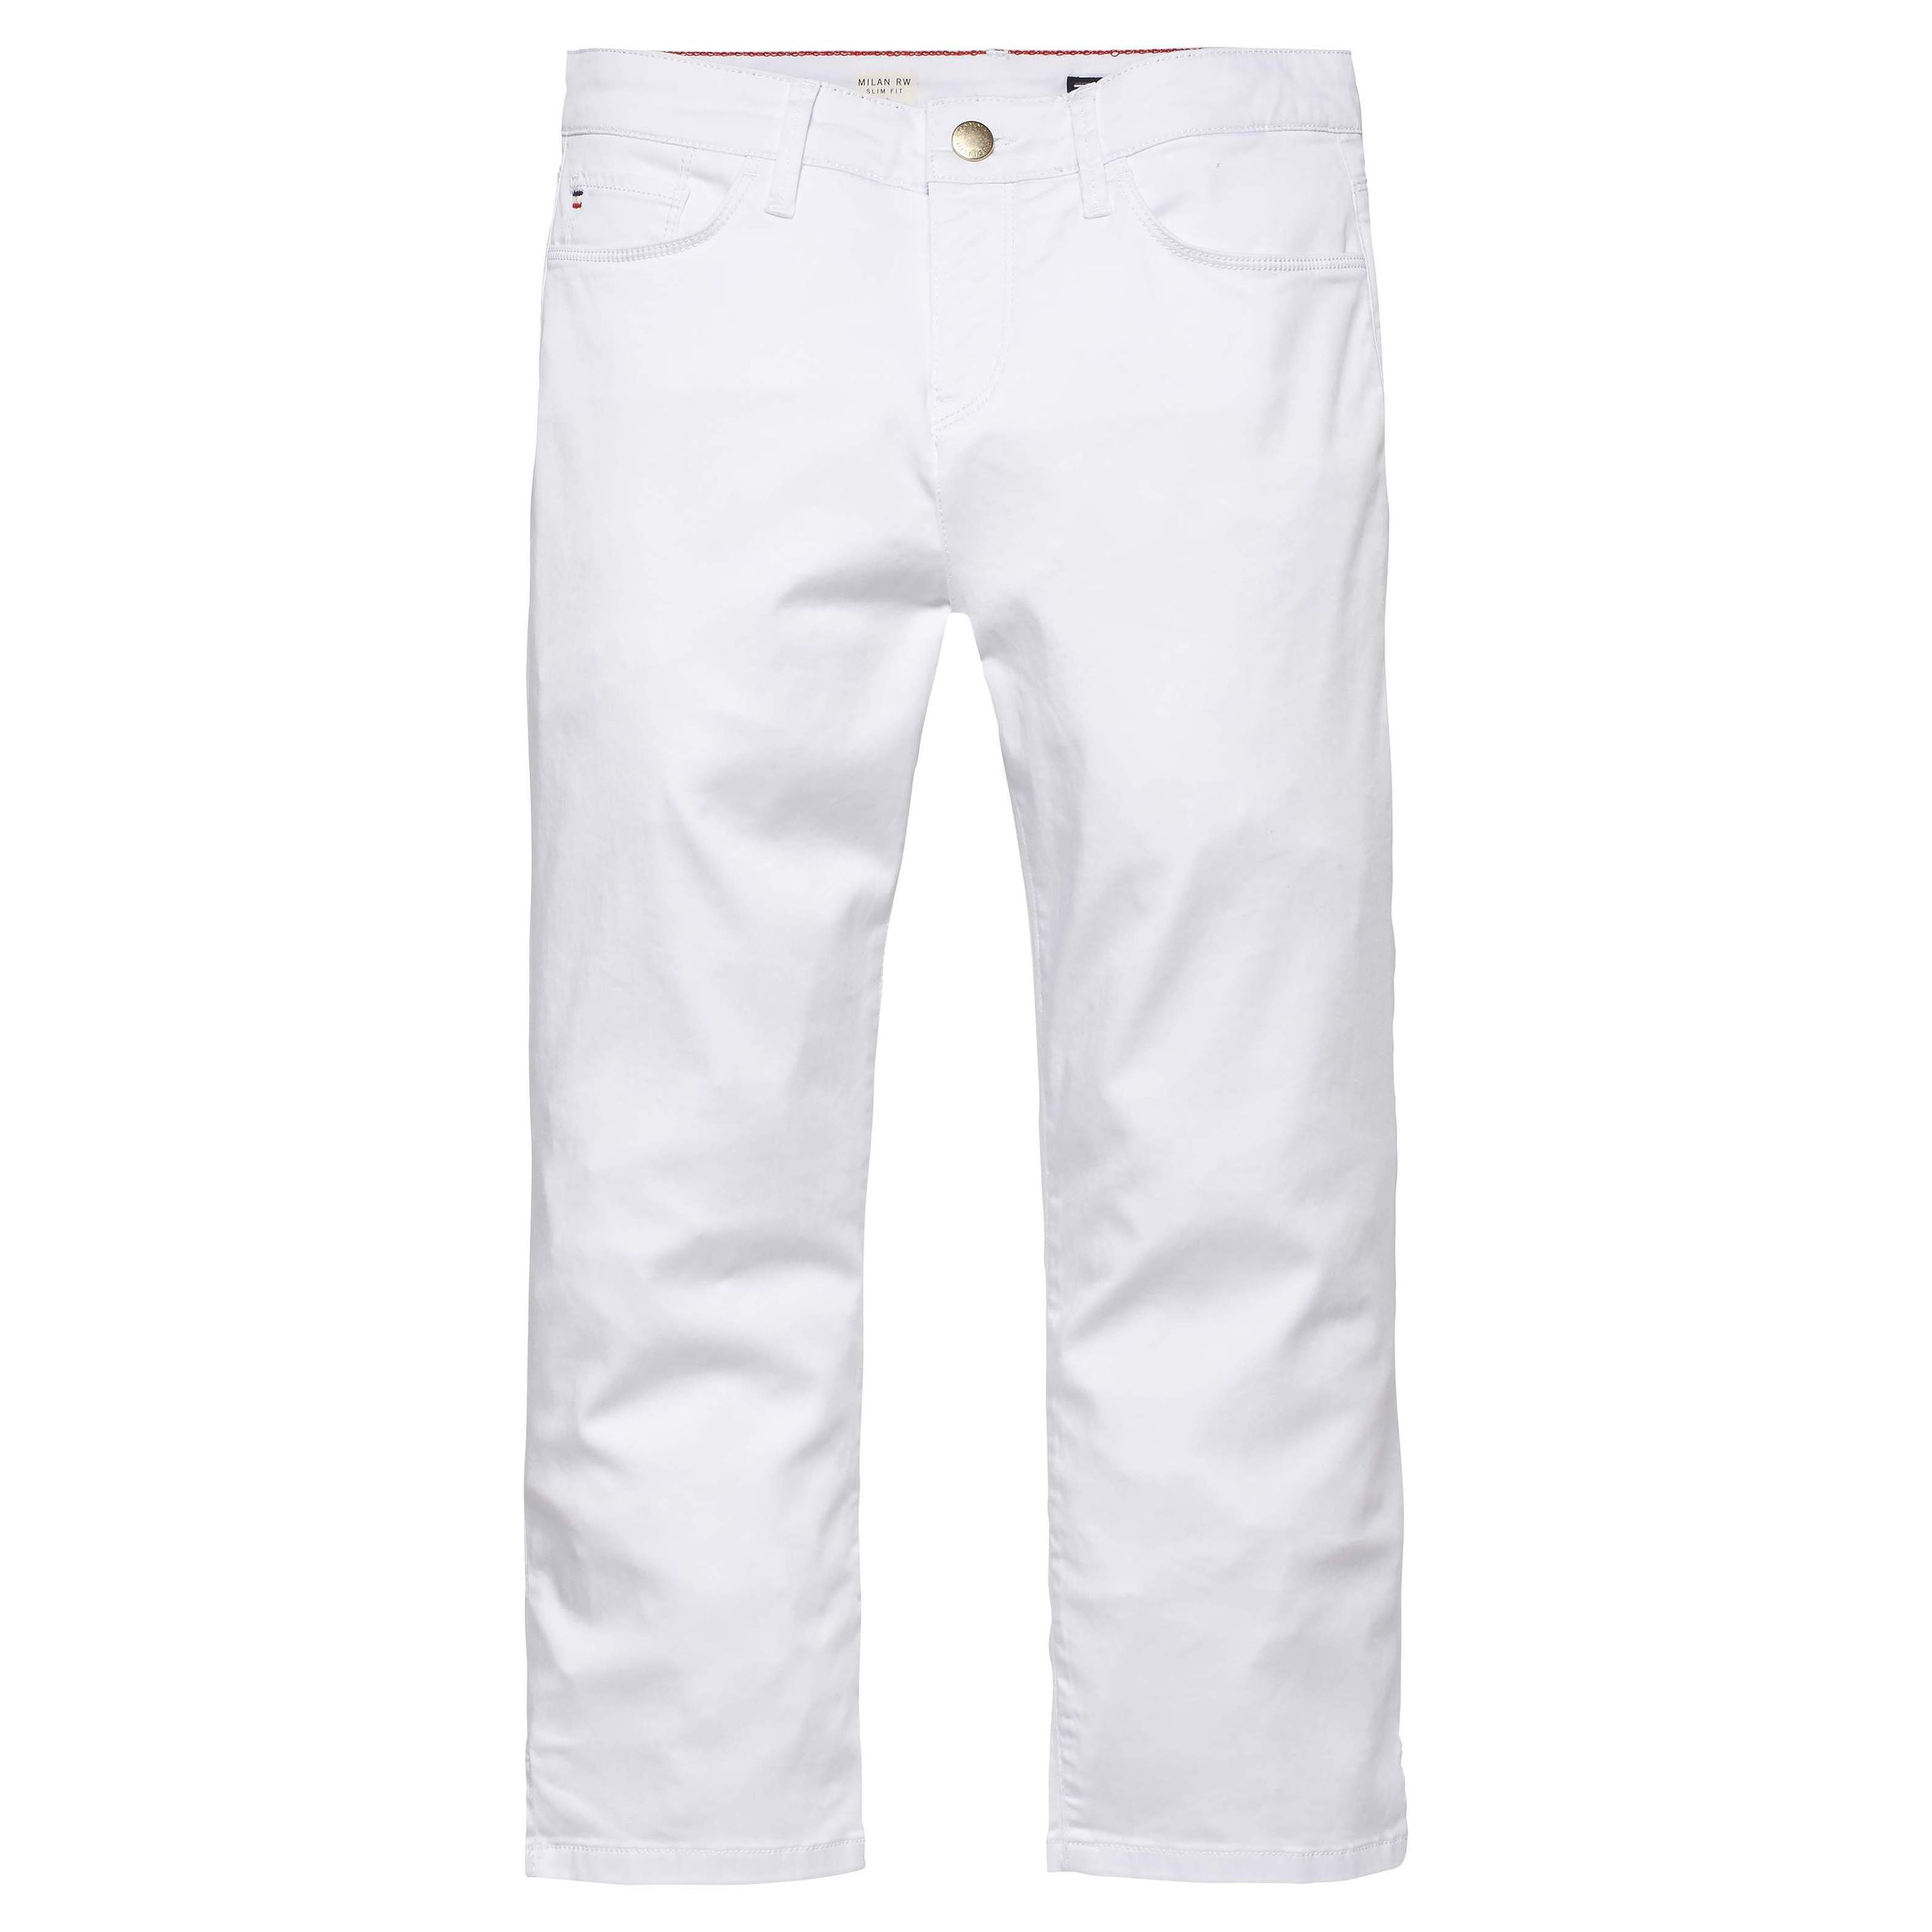 Tommy Hilfiger Silvana Milan Cropped Pants, White